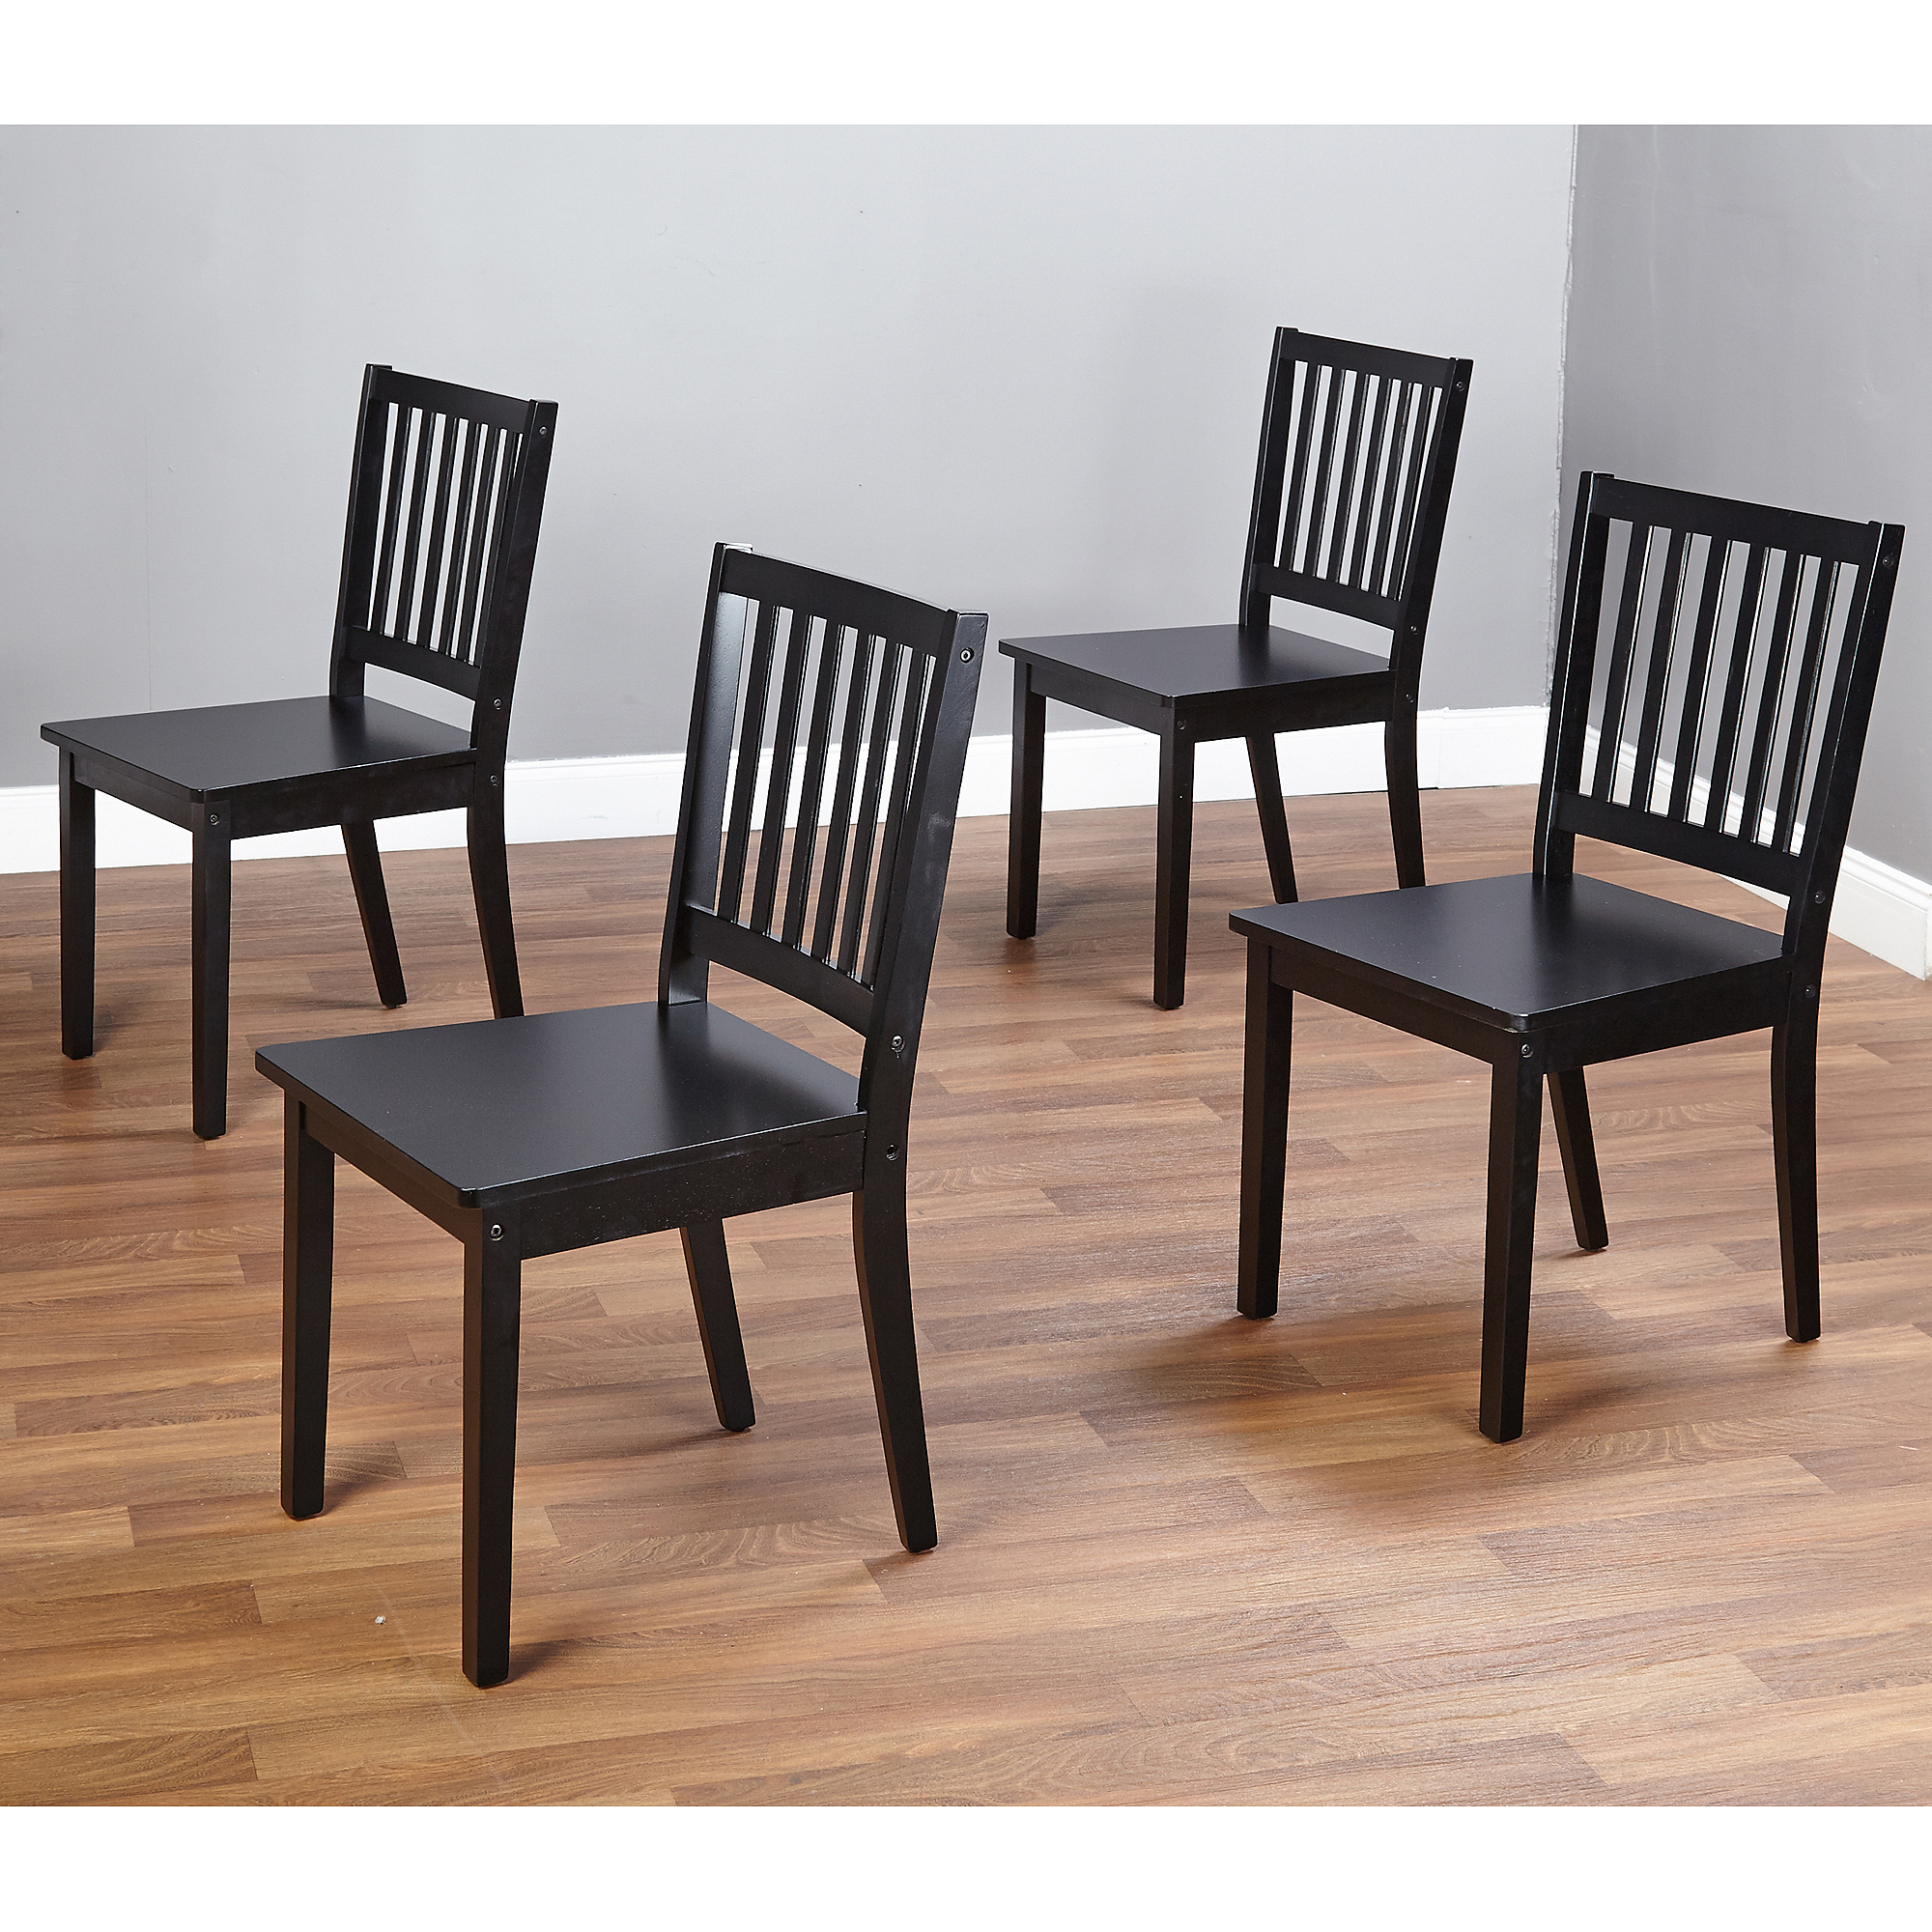 & Shaker Dining Chairs Set of 4 Espresso - Walmart.com